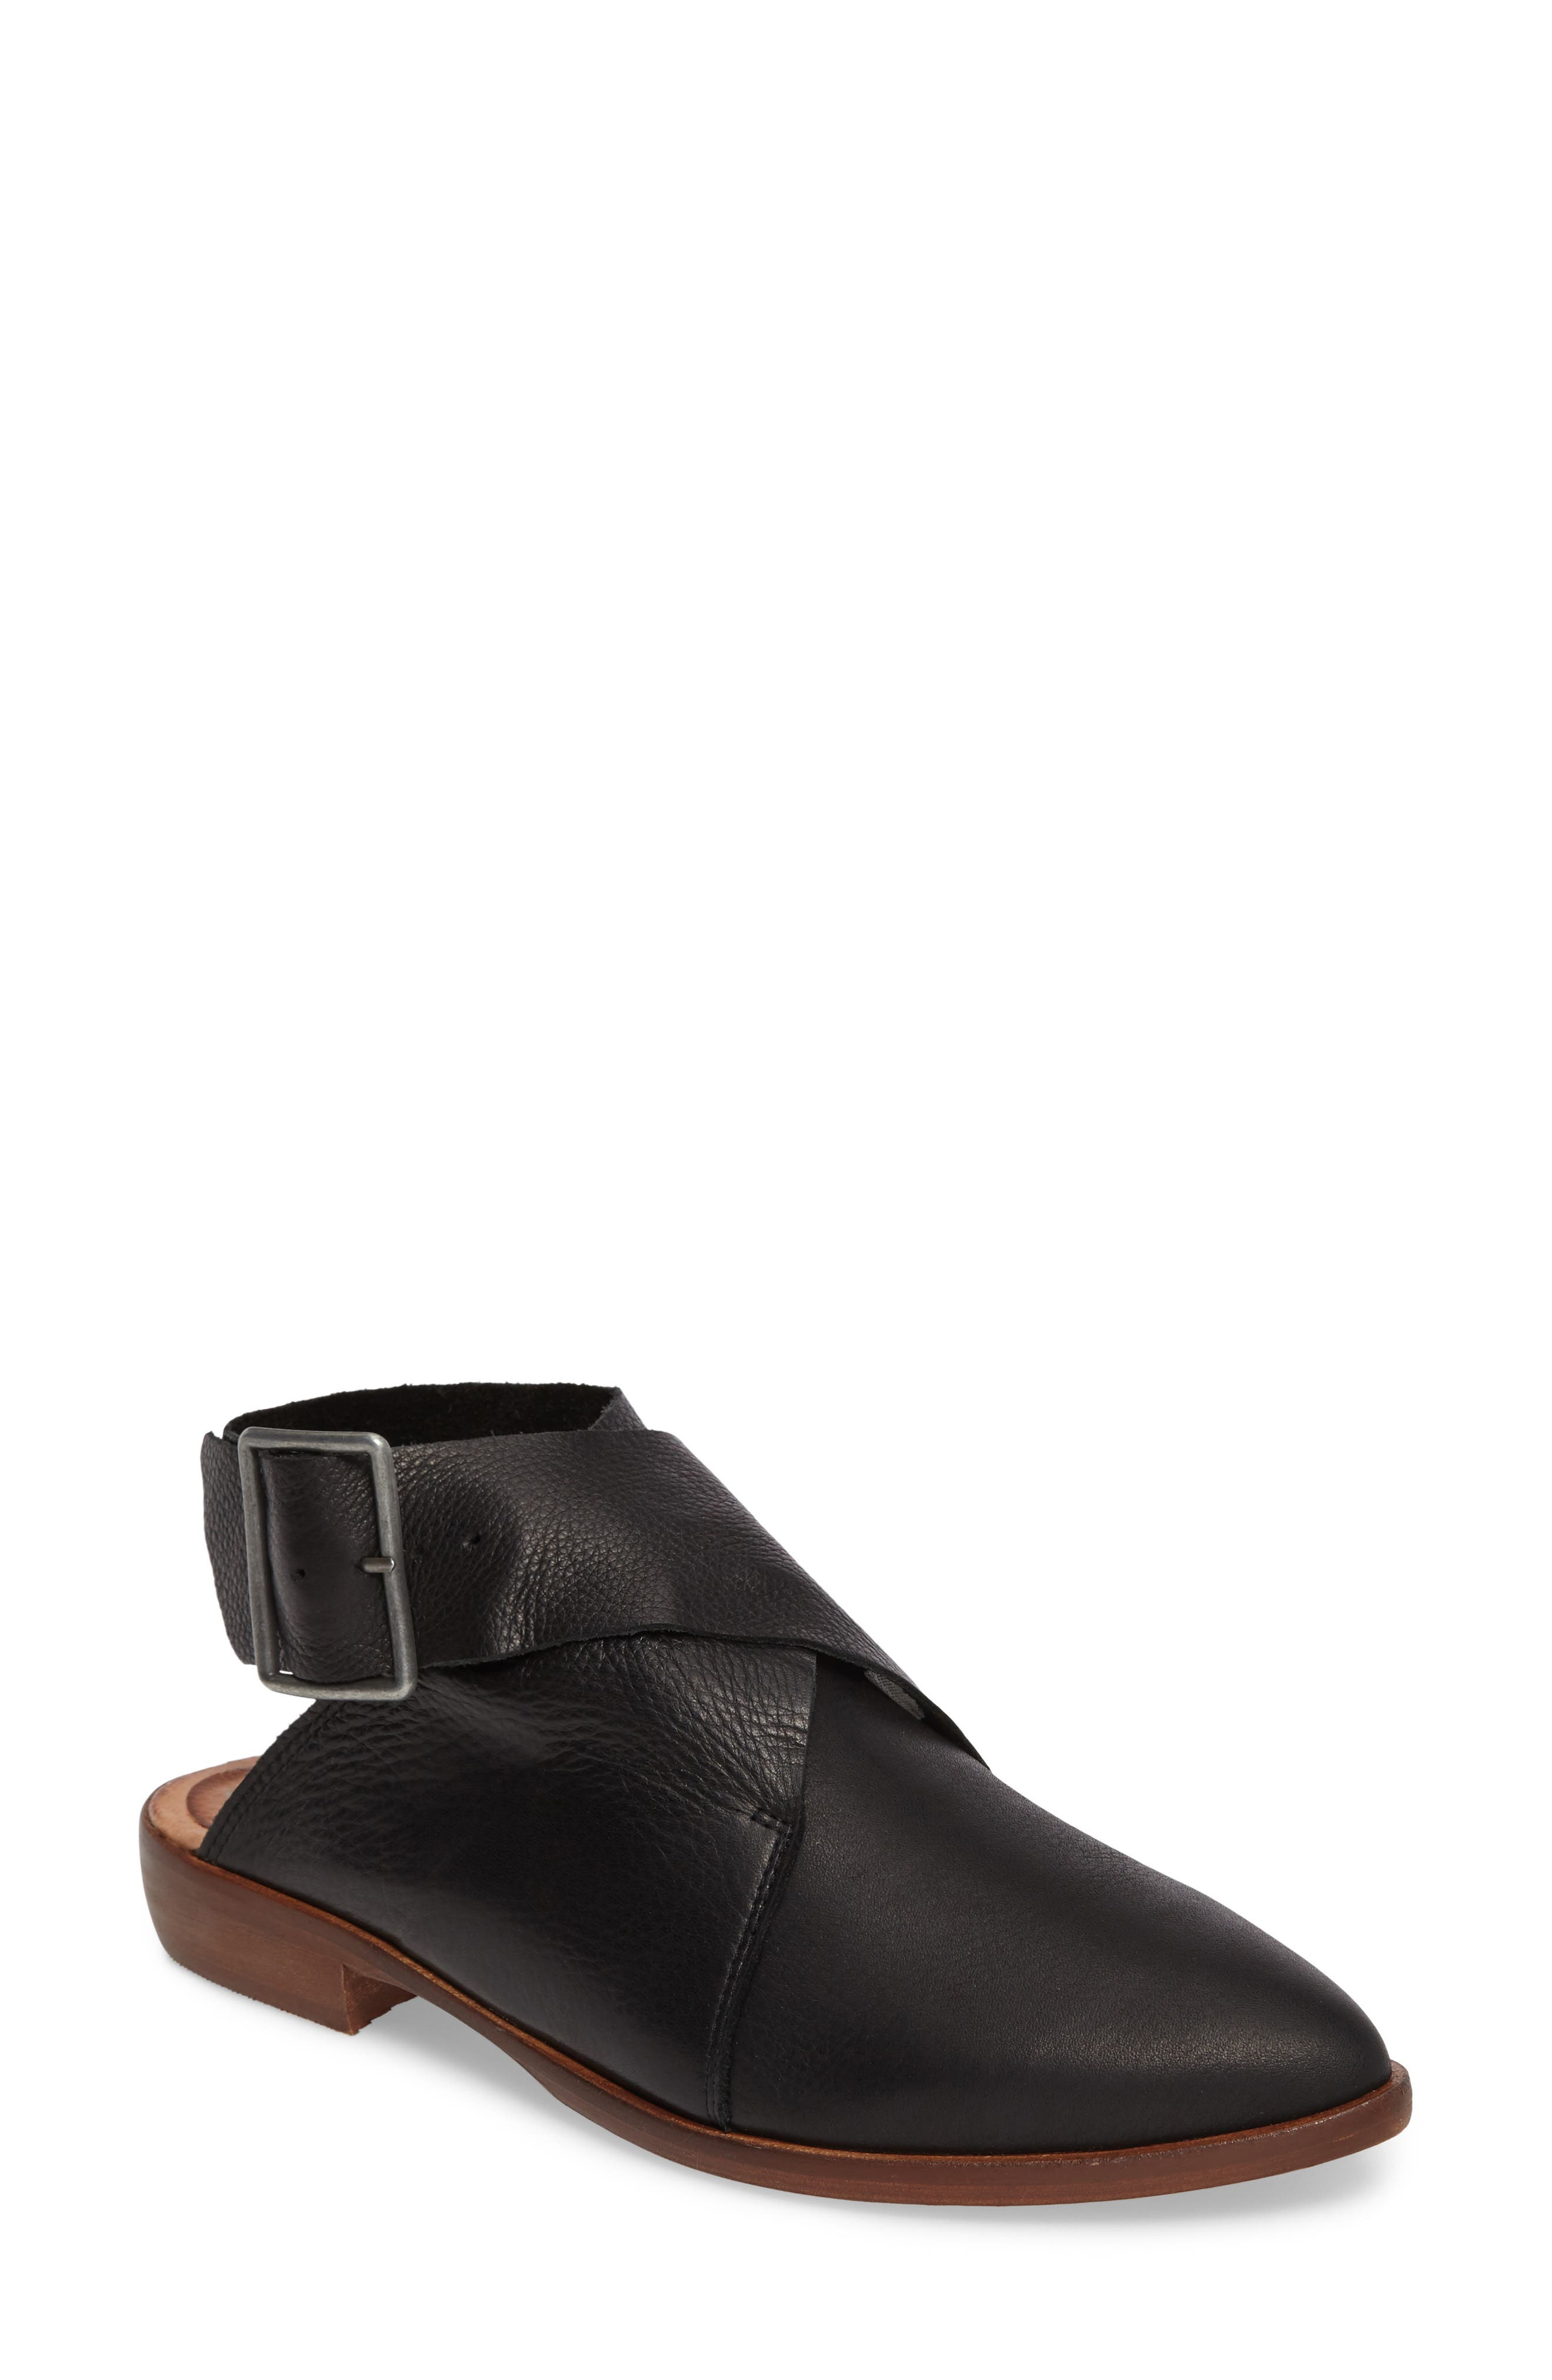 Bryce Buckle Wrap Flat,                         Main,                         color, 001